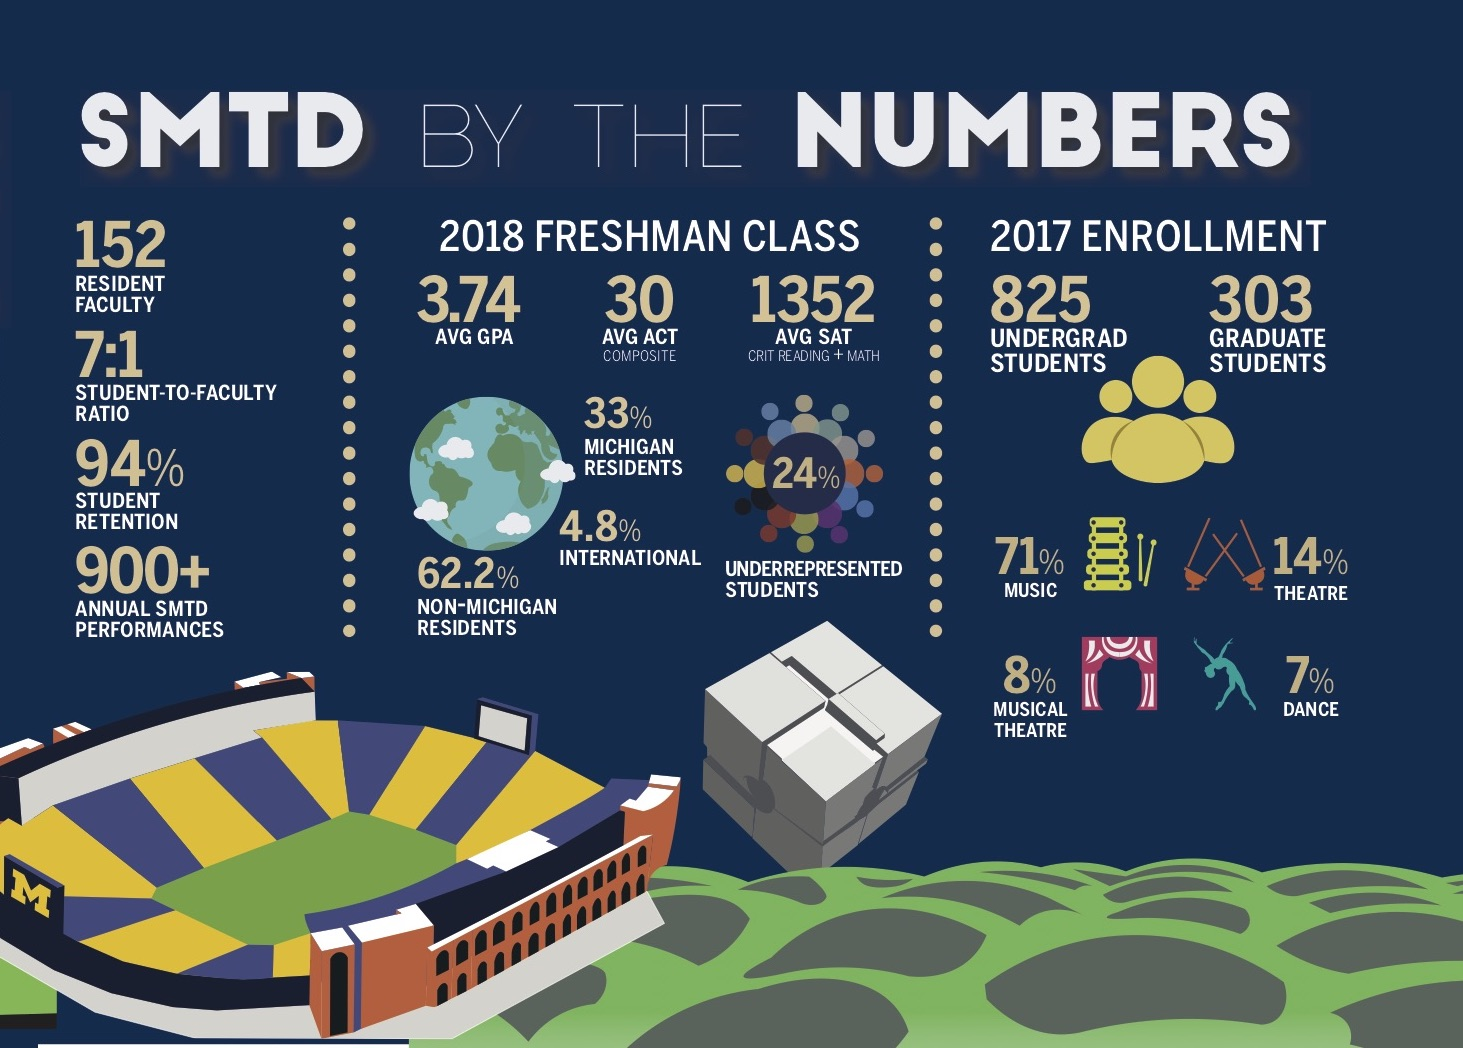 SMTD by the Numbers. 152 resident faculty, 7:1 student to faculty ratio, 94% student retention, 900+ annual SMTD performances. 2018 Freshman class: 3.74 average GPA, 30 average ACT, 1352 average SAT. 33% Michigan residents, 62.2% non-Michigan residents, 4.8% international, 24% underrepresented students. 2017 enrollment: 825 undergraduate students, 303 graduate students, 71% music, 14% theatre, 8% musical theatre, 7% dance.